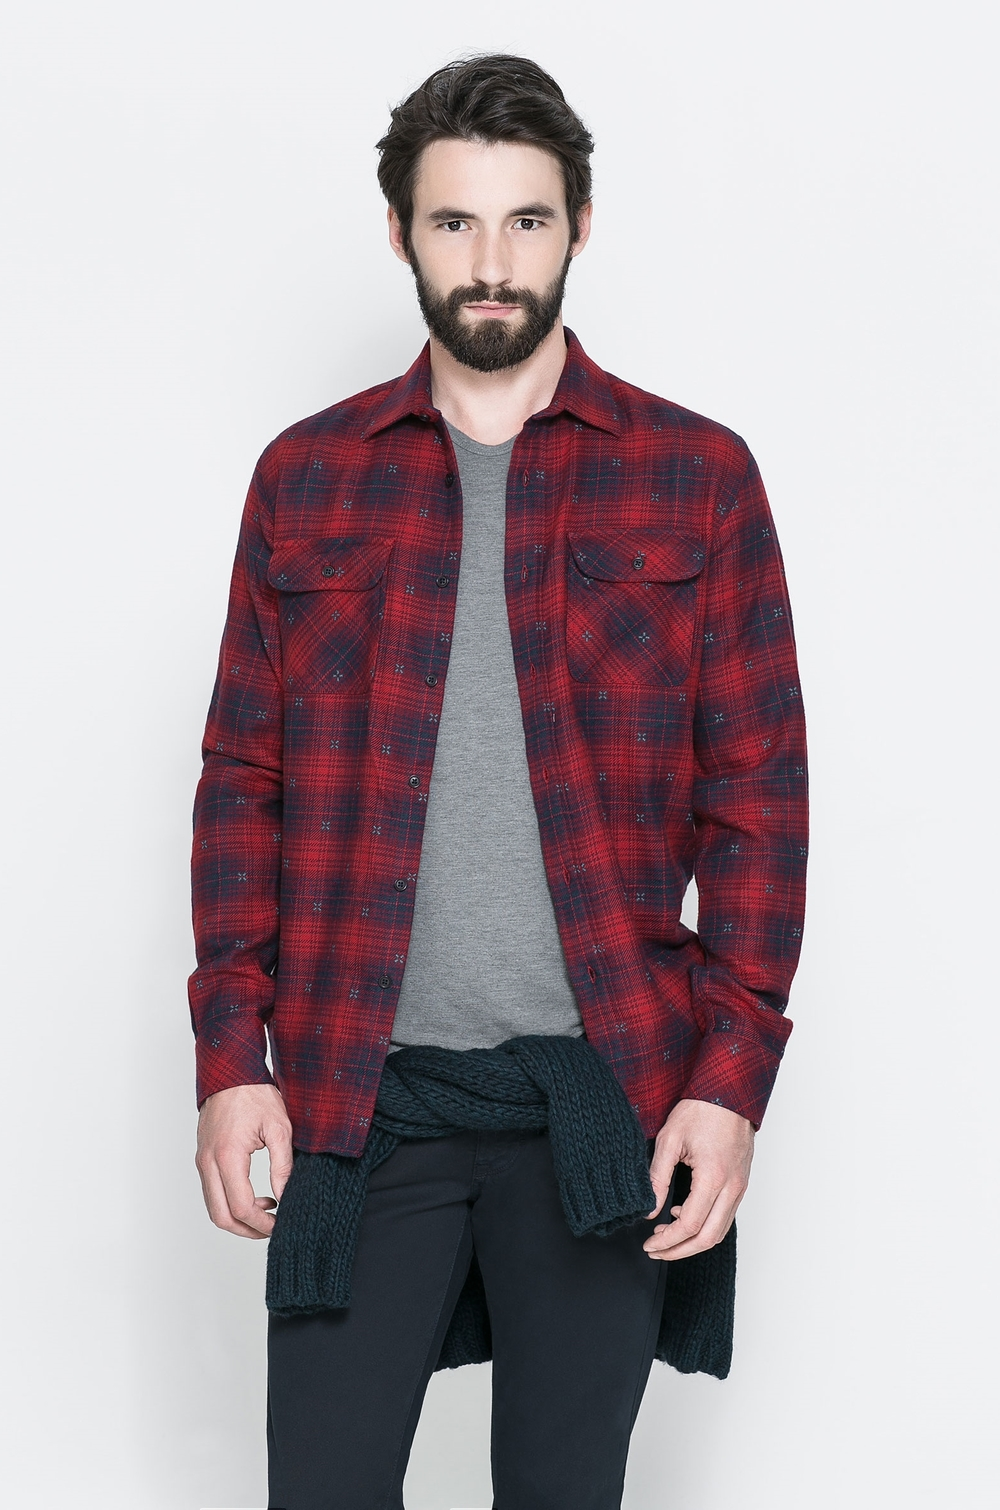 zara-red-printed-flannel-shirt-product-1-14518558-355033738.jpeg